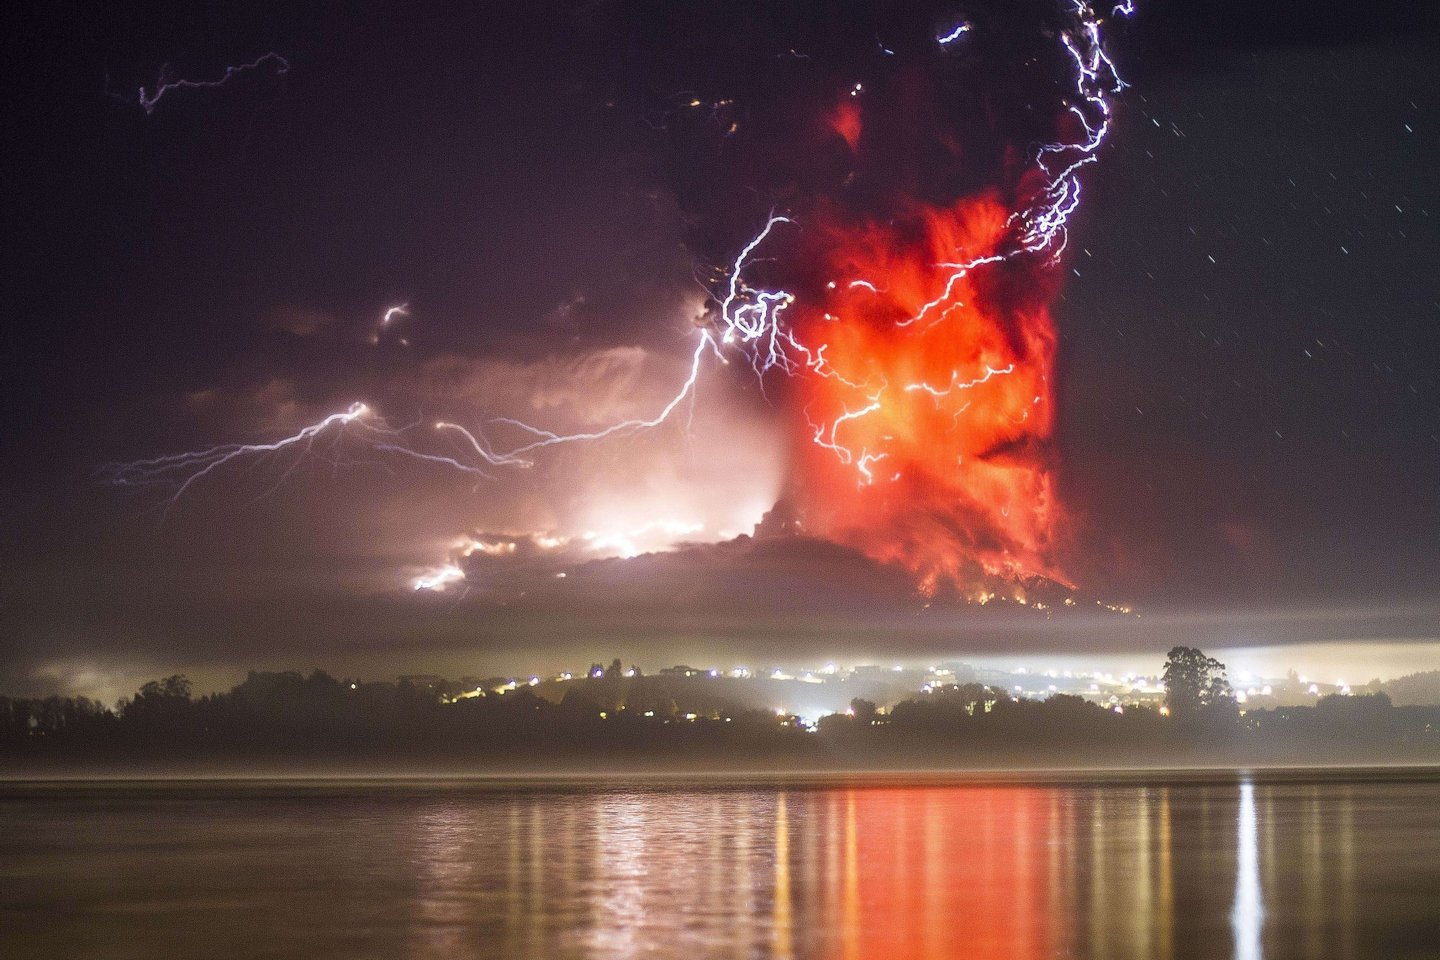 This view from Puerto Varas, southern Chile, shows a high column of ash and lava spewing from the Calbuco volcano, on April 23, 2015. Chile's Calbuco volcano erupted on Wednesday, spewing a giant funnel of ash high into the sky near the southern port city of Puerto Montt and triggering a red alert. Authorities ordered an evacuation for a 10-kilometer (six-mile) radius around the volcano, which is the second in southern Chile to have a substantial eruption since March 3, when the Villarrica volcano emitted a brief but fiery burst of ash and lava. AFP PHOTO/DAVID CORTES SEREY/AGENCIA UNO        (Photo credit should read DAVID CORTES SEREY/AFP/Getty Images)